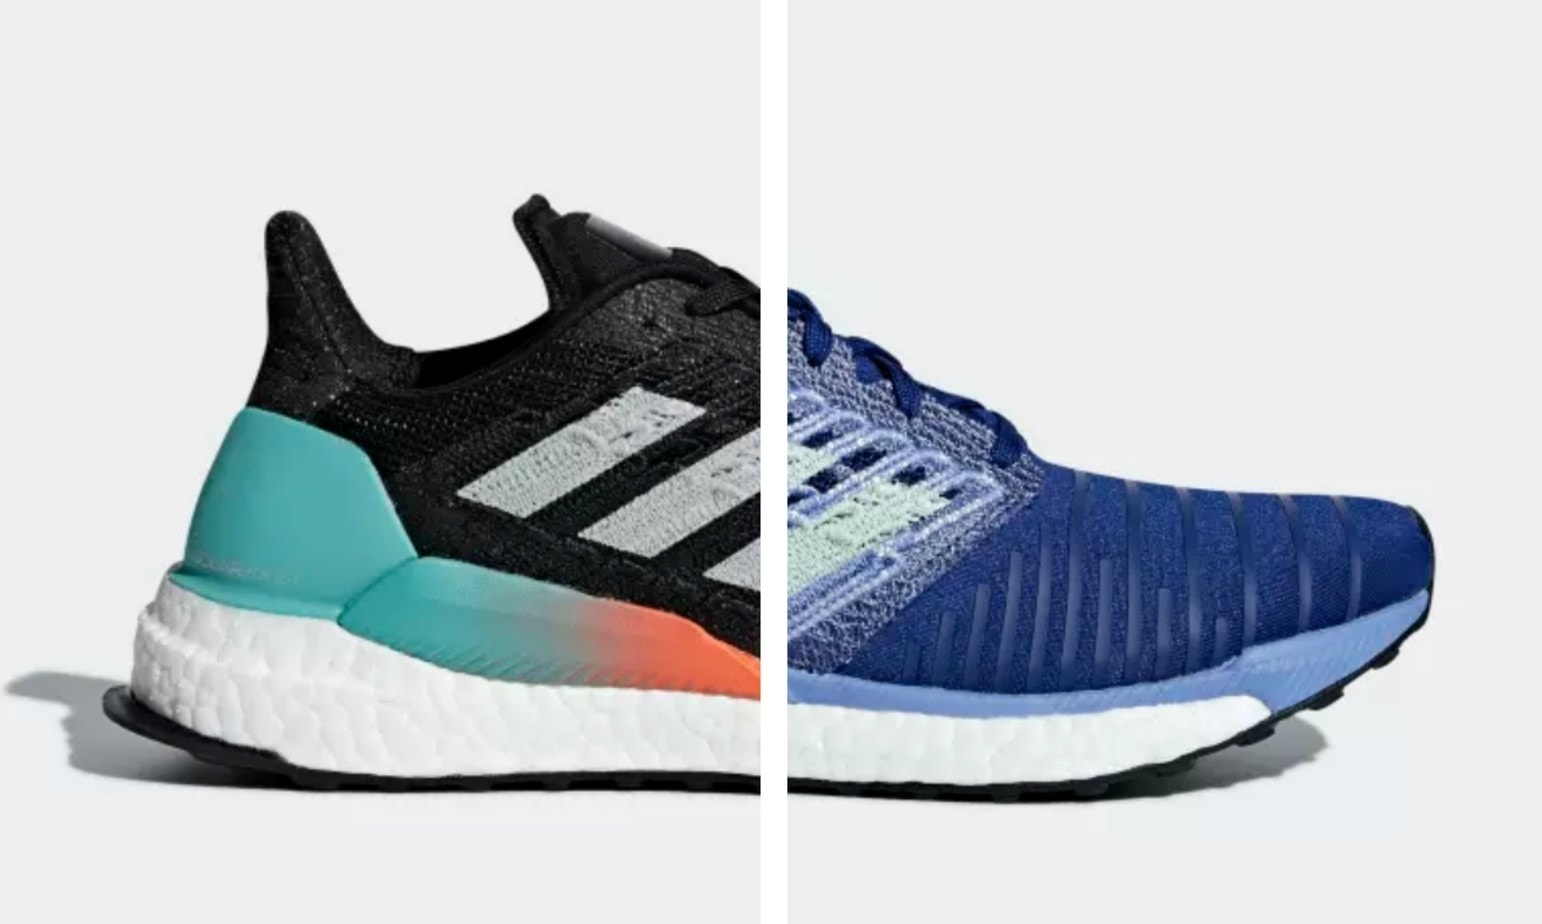 2abc9cdc37fea The adidas Solar was a bust when it first released in 2015. Despite the  silhouette s incredible performance benefits